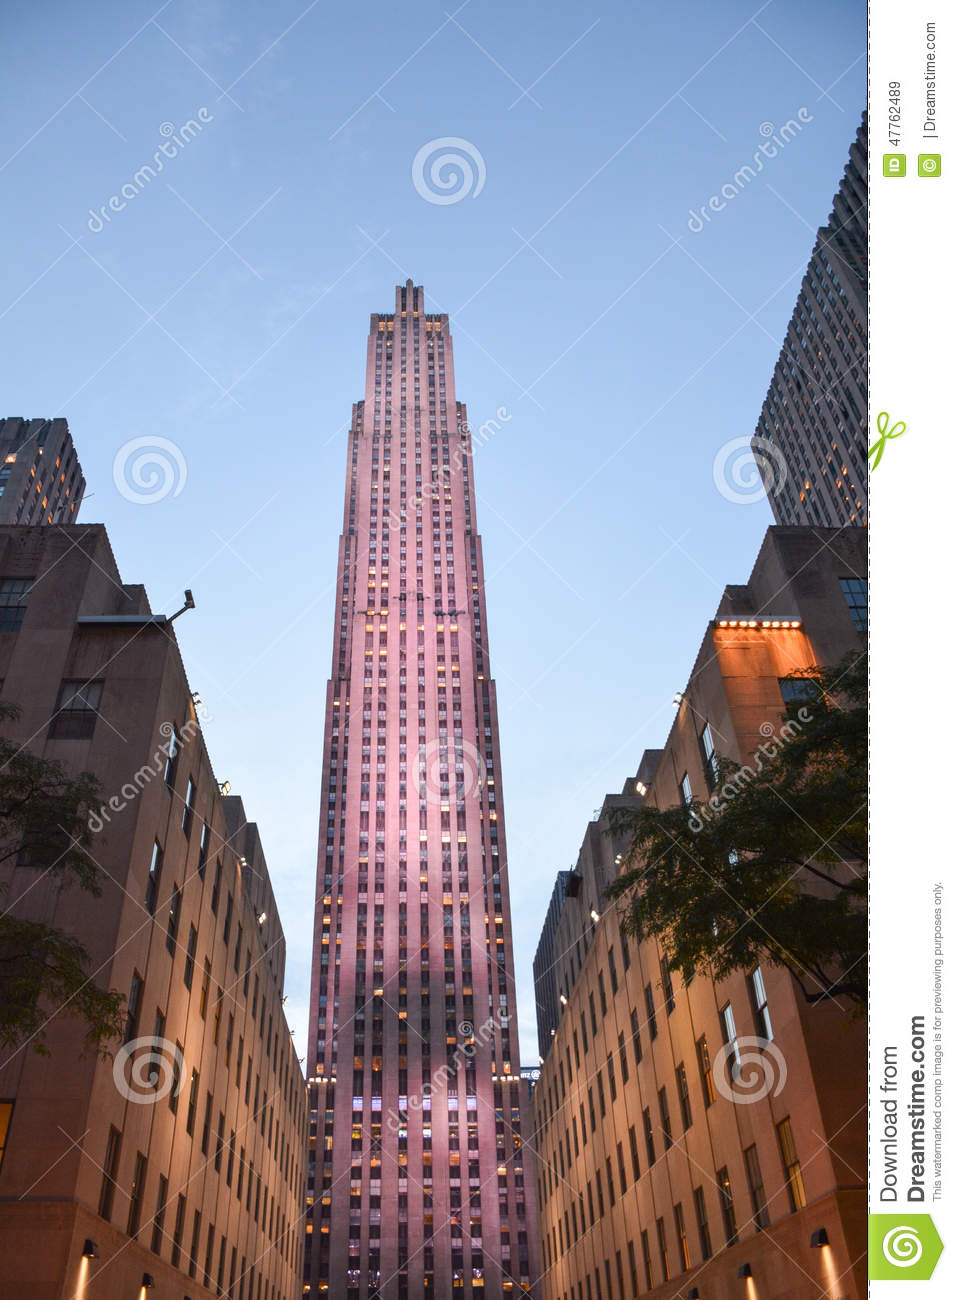 Cucina Restaurant Rockefeller Center Rockefeller Center Nyc Editorial Stock Image Image Of